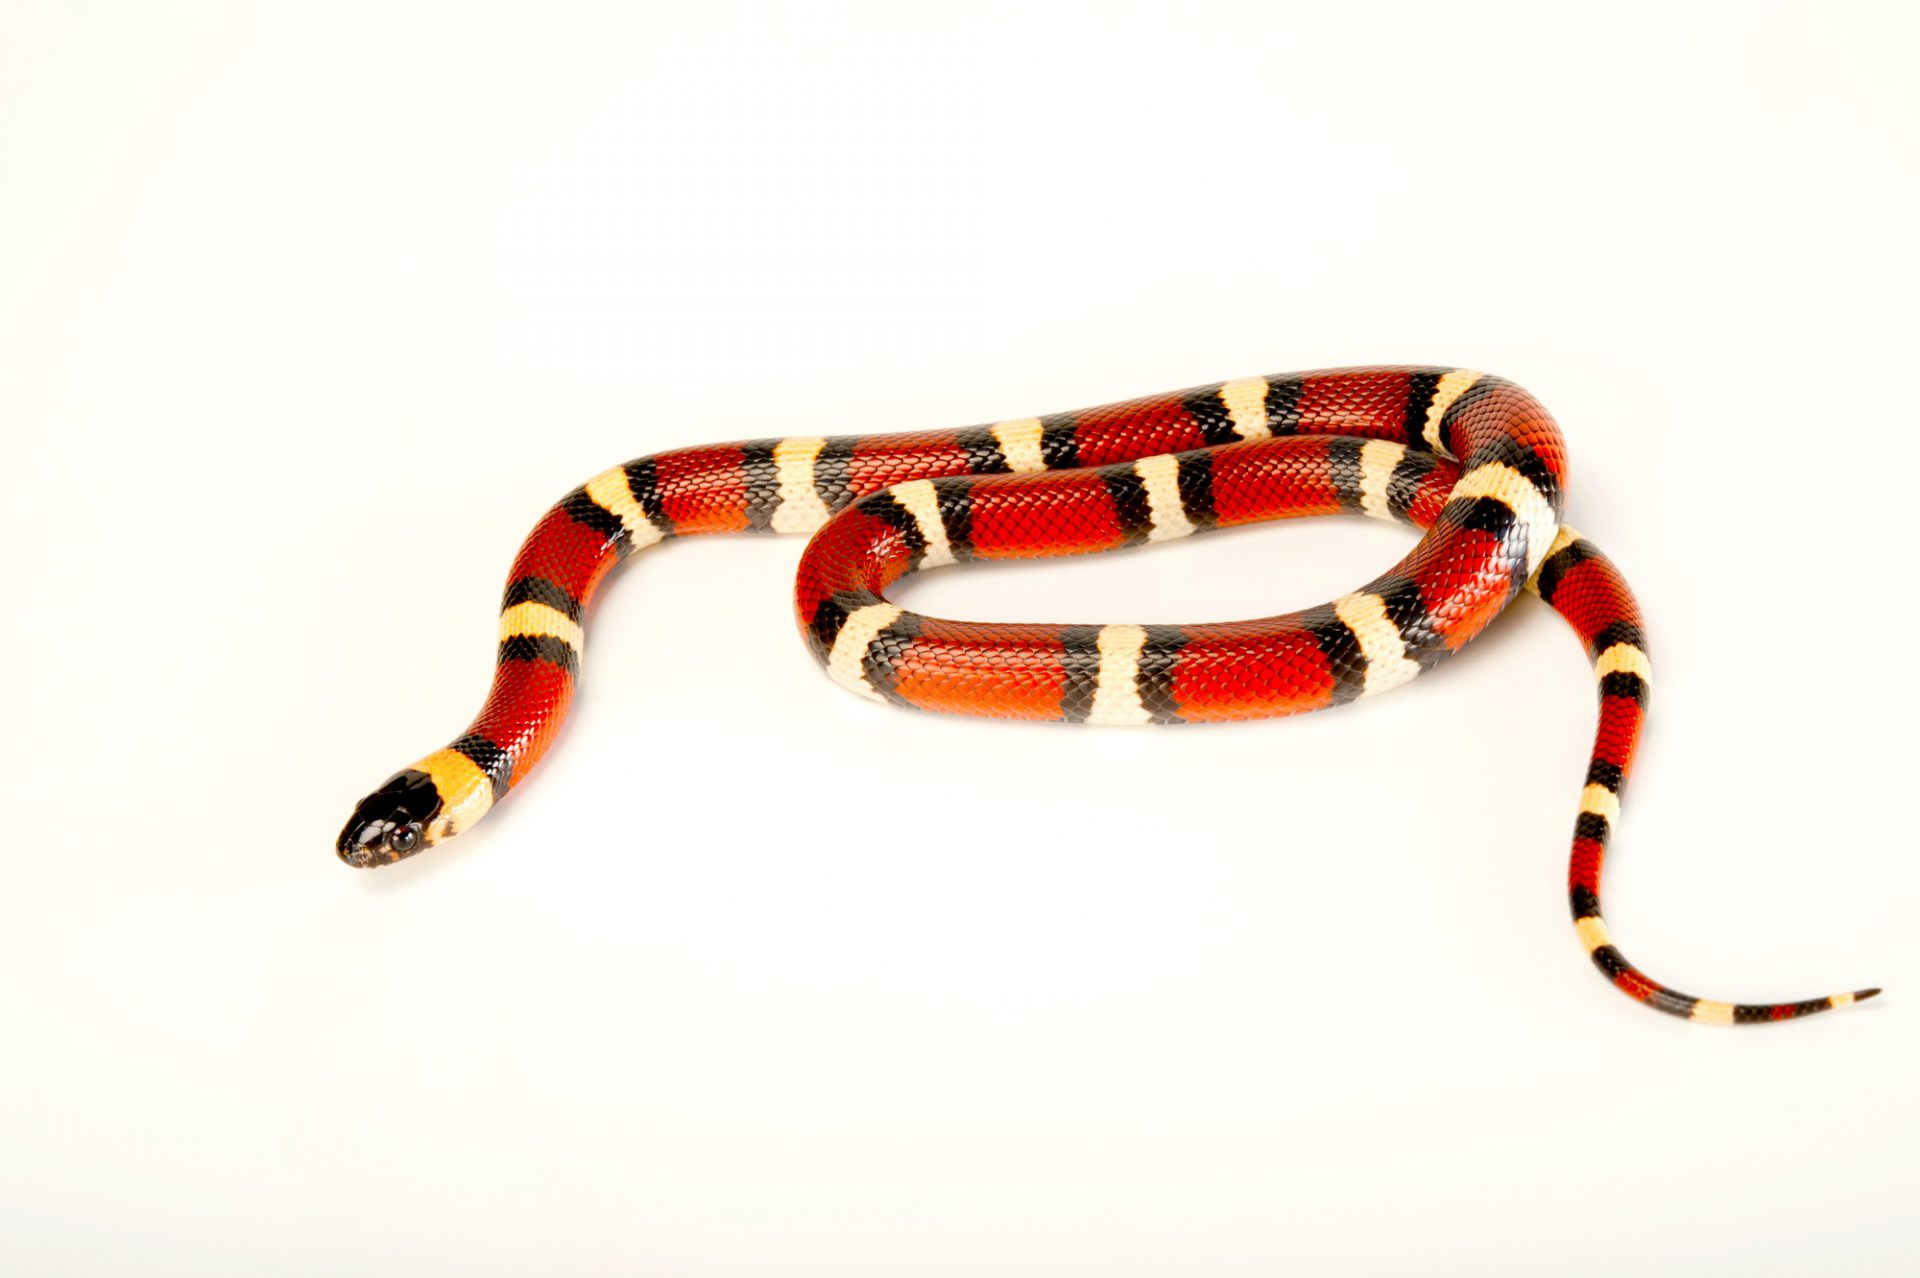 A Mexican milksnake (Lampropeltis triangulum annulata) at the Gladys Porter Zoo in Brownsville, Texas.